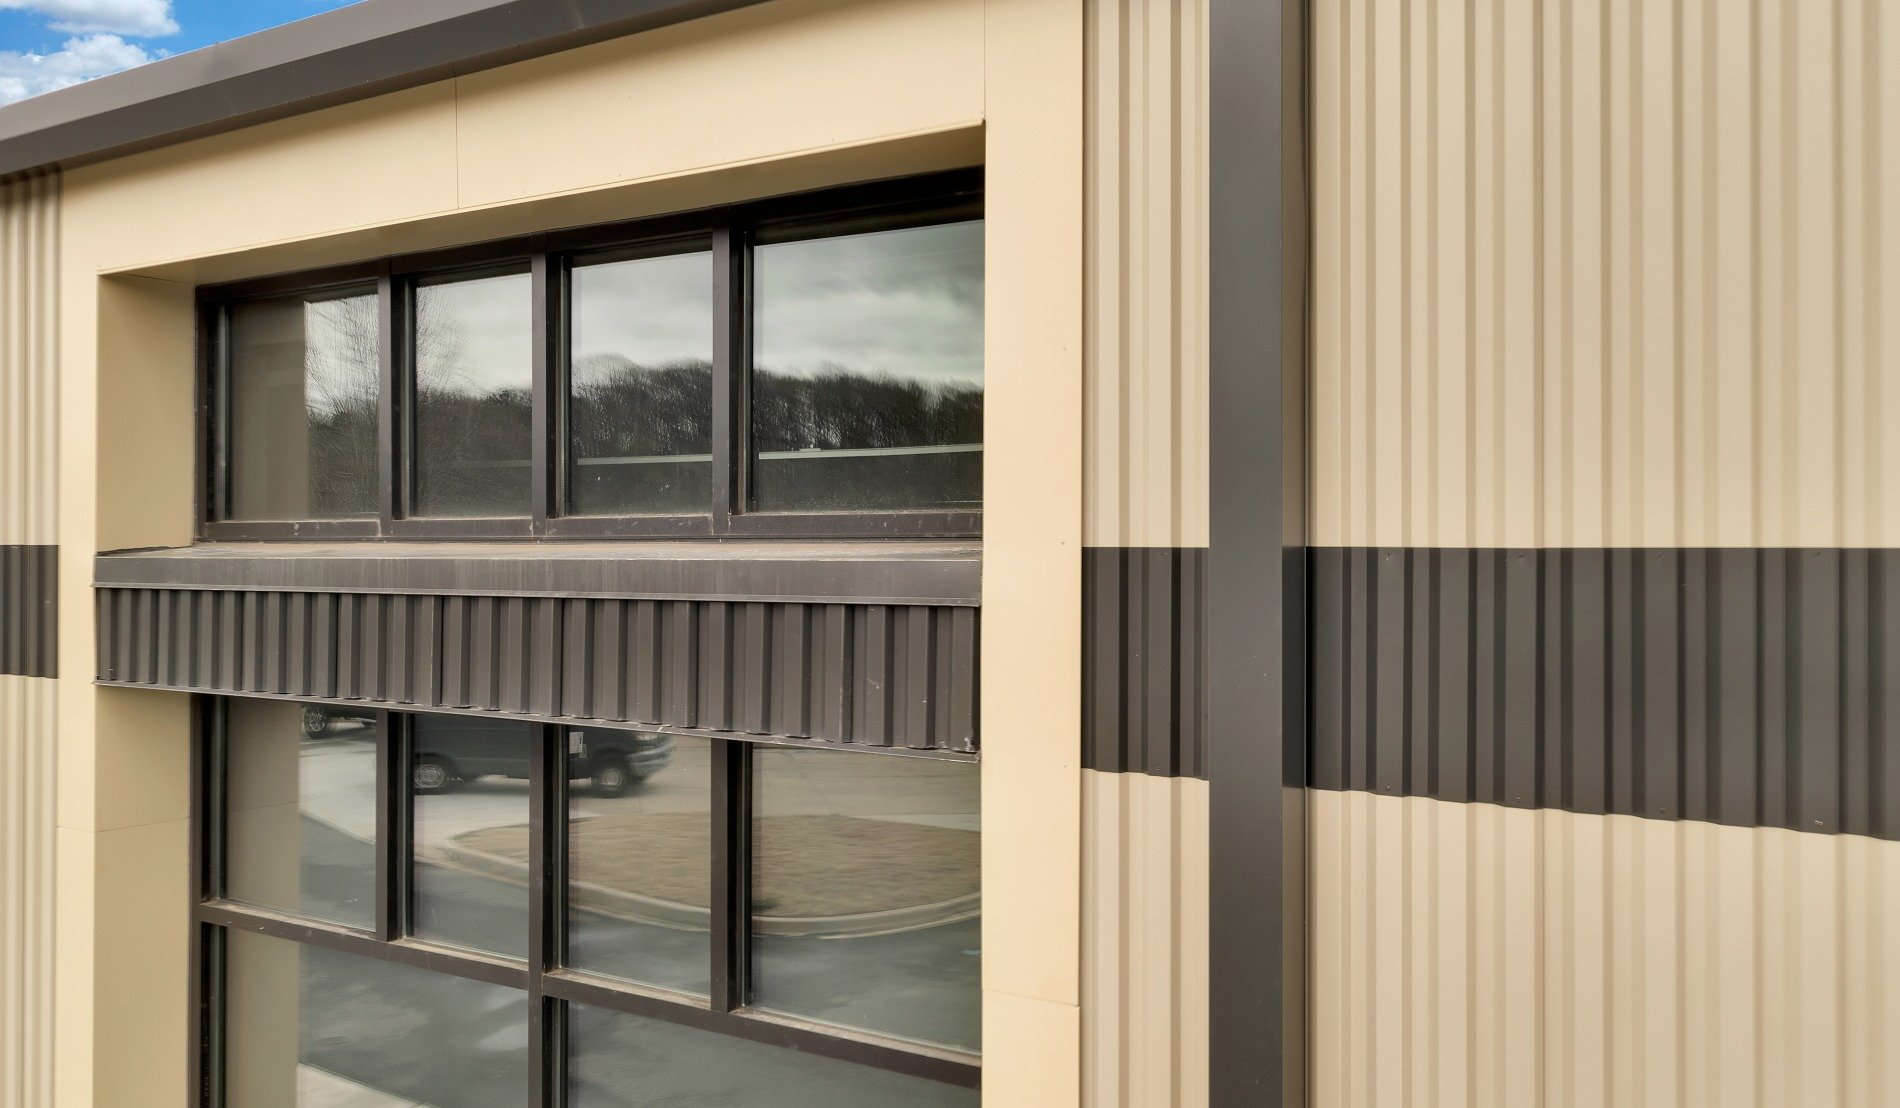 Wave panel serves as facade for training, strength facility in South Carolina